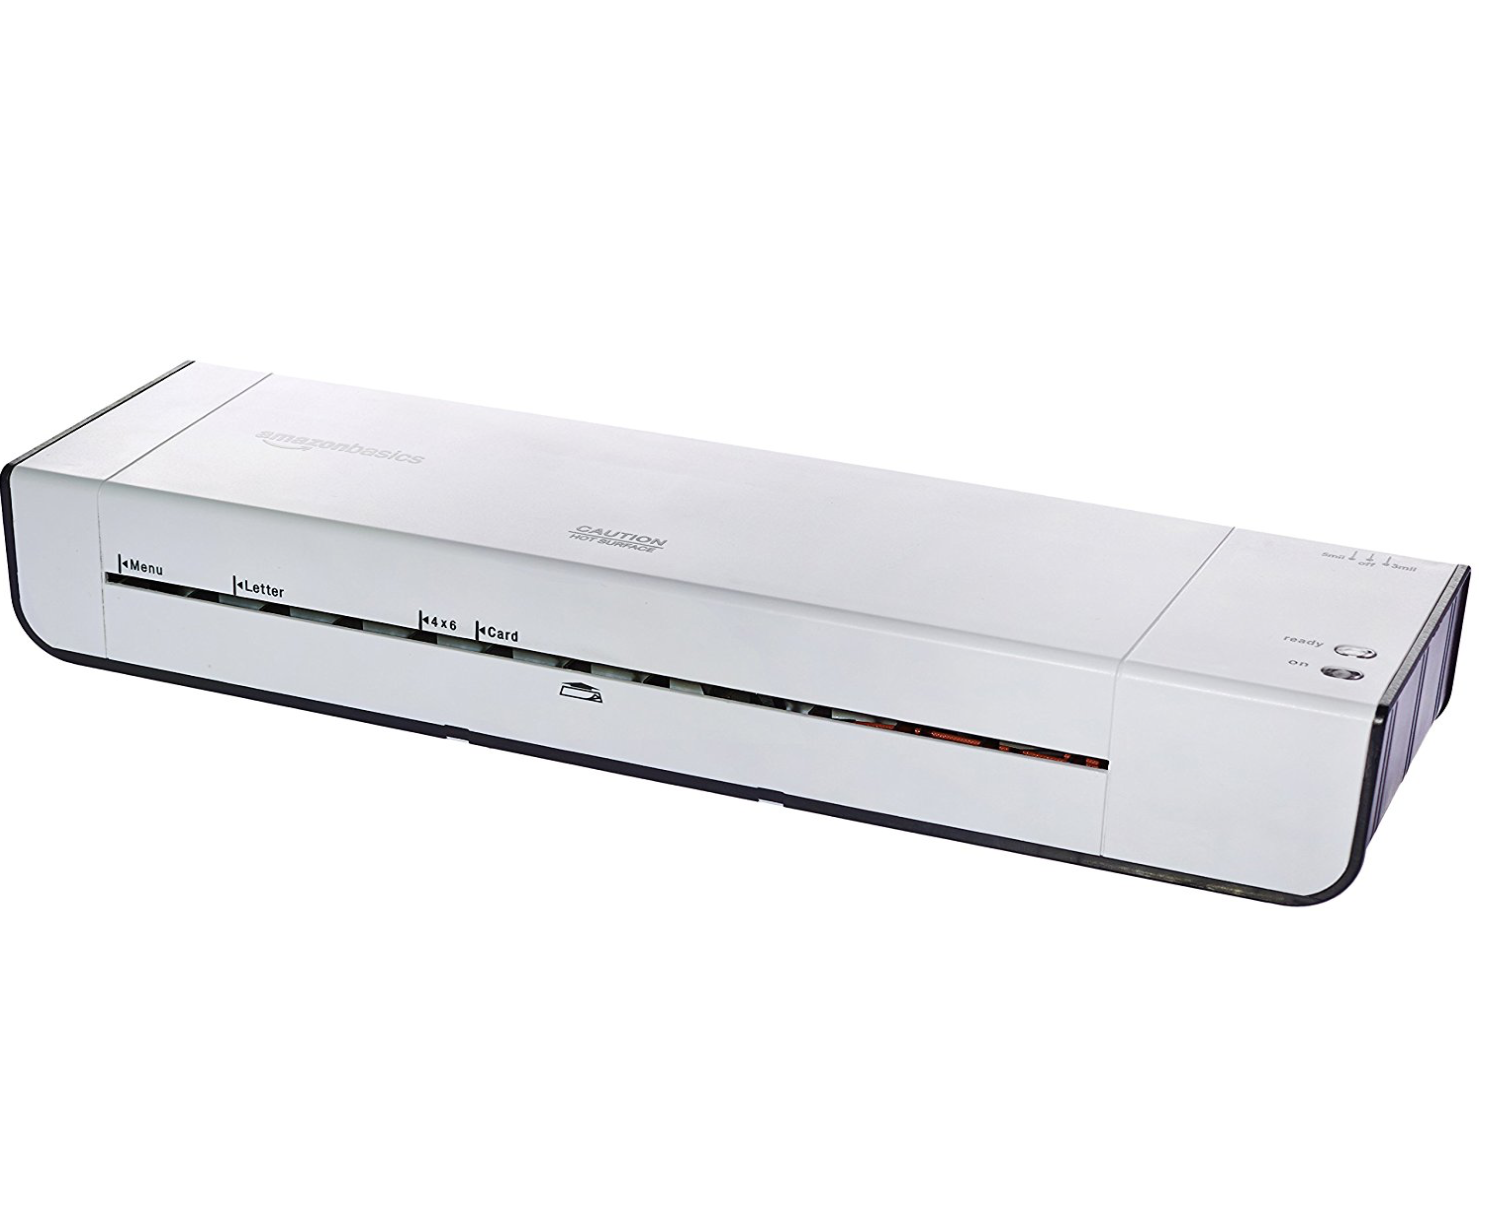 The Amazon Basics Laminator - From Amazon: You can't go wrong with this laminator. We have put it through just about everything, and when you factor in price, this personal pouch laminator wins hands down.